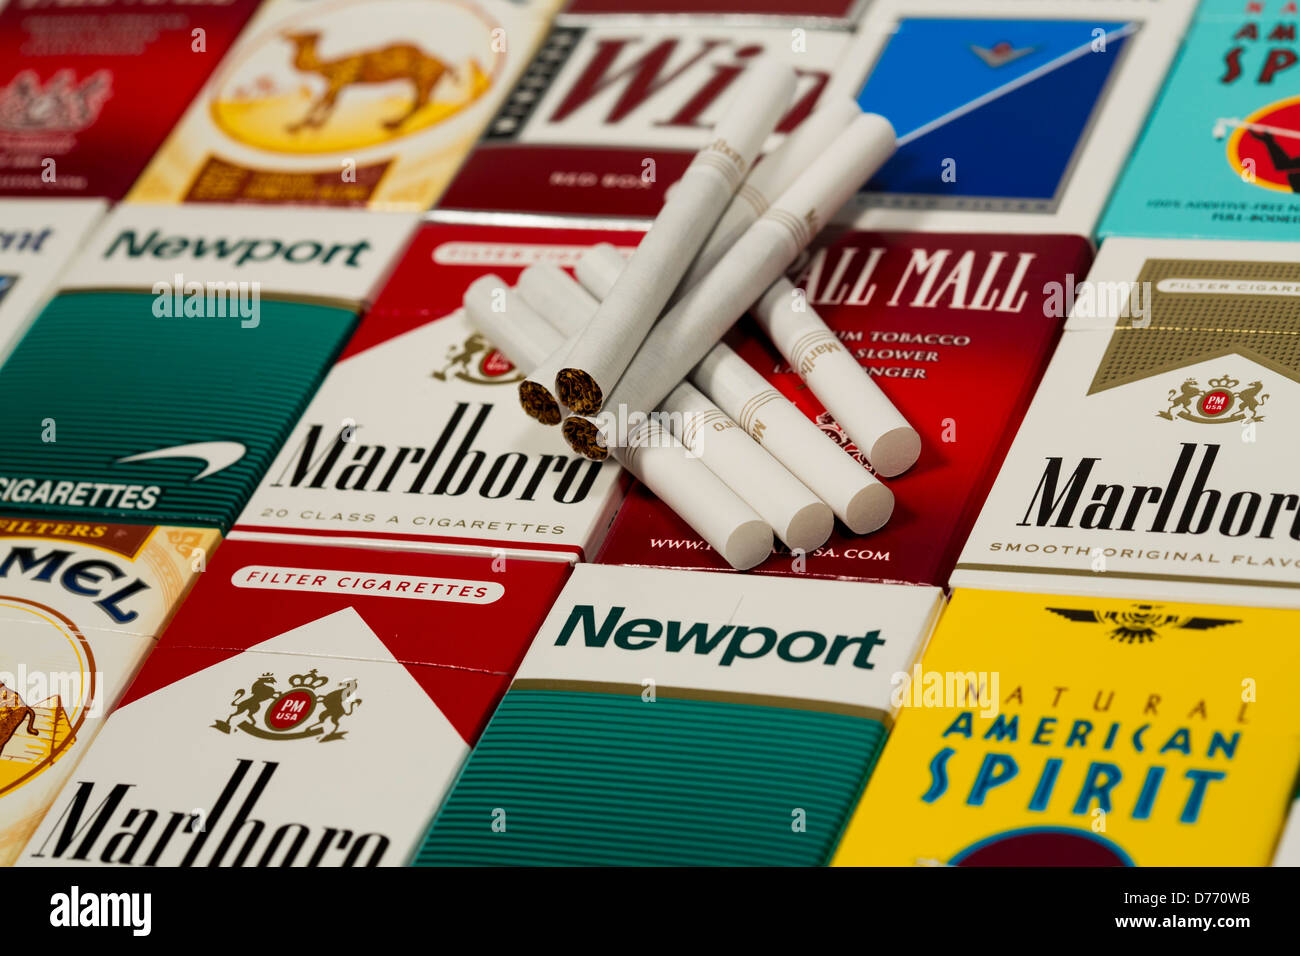 Cigarettes Marlboro from UK airport